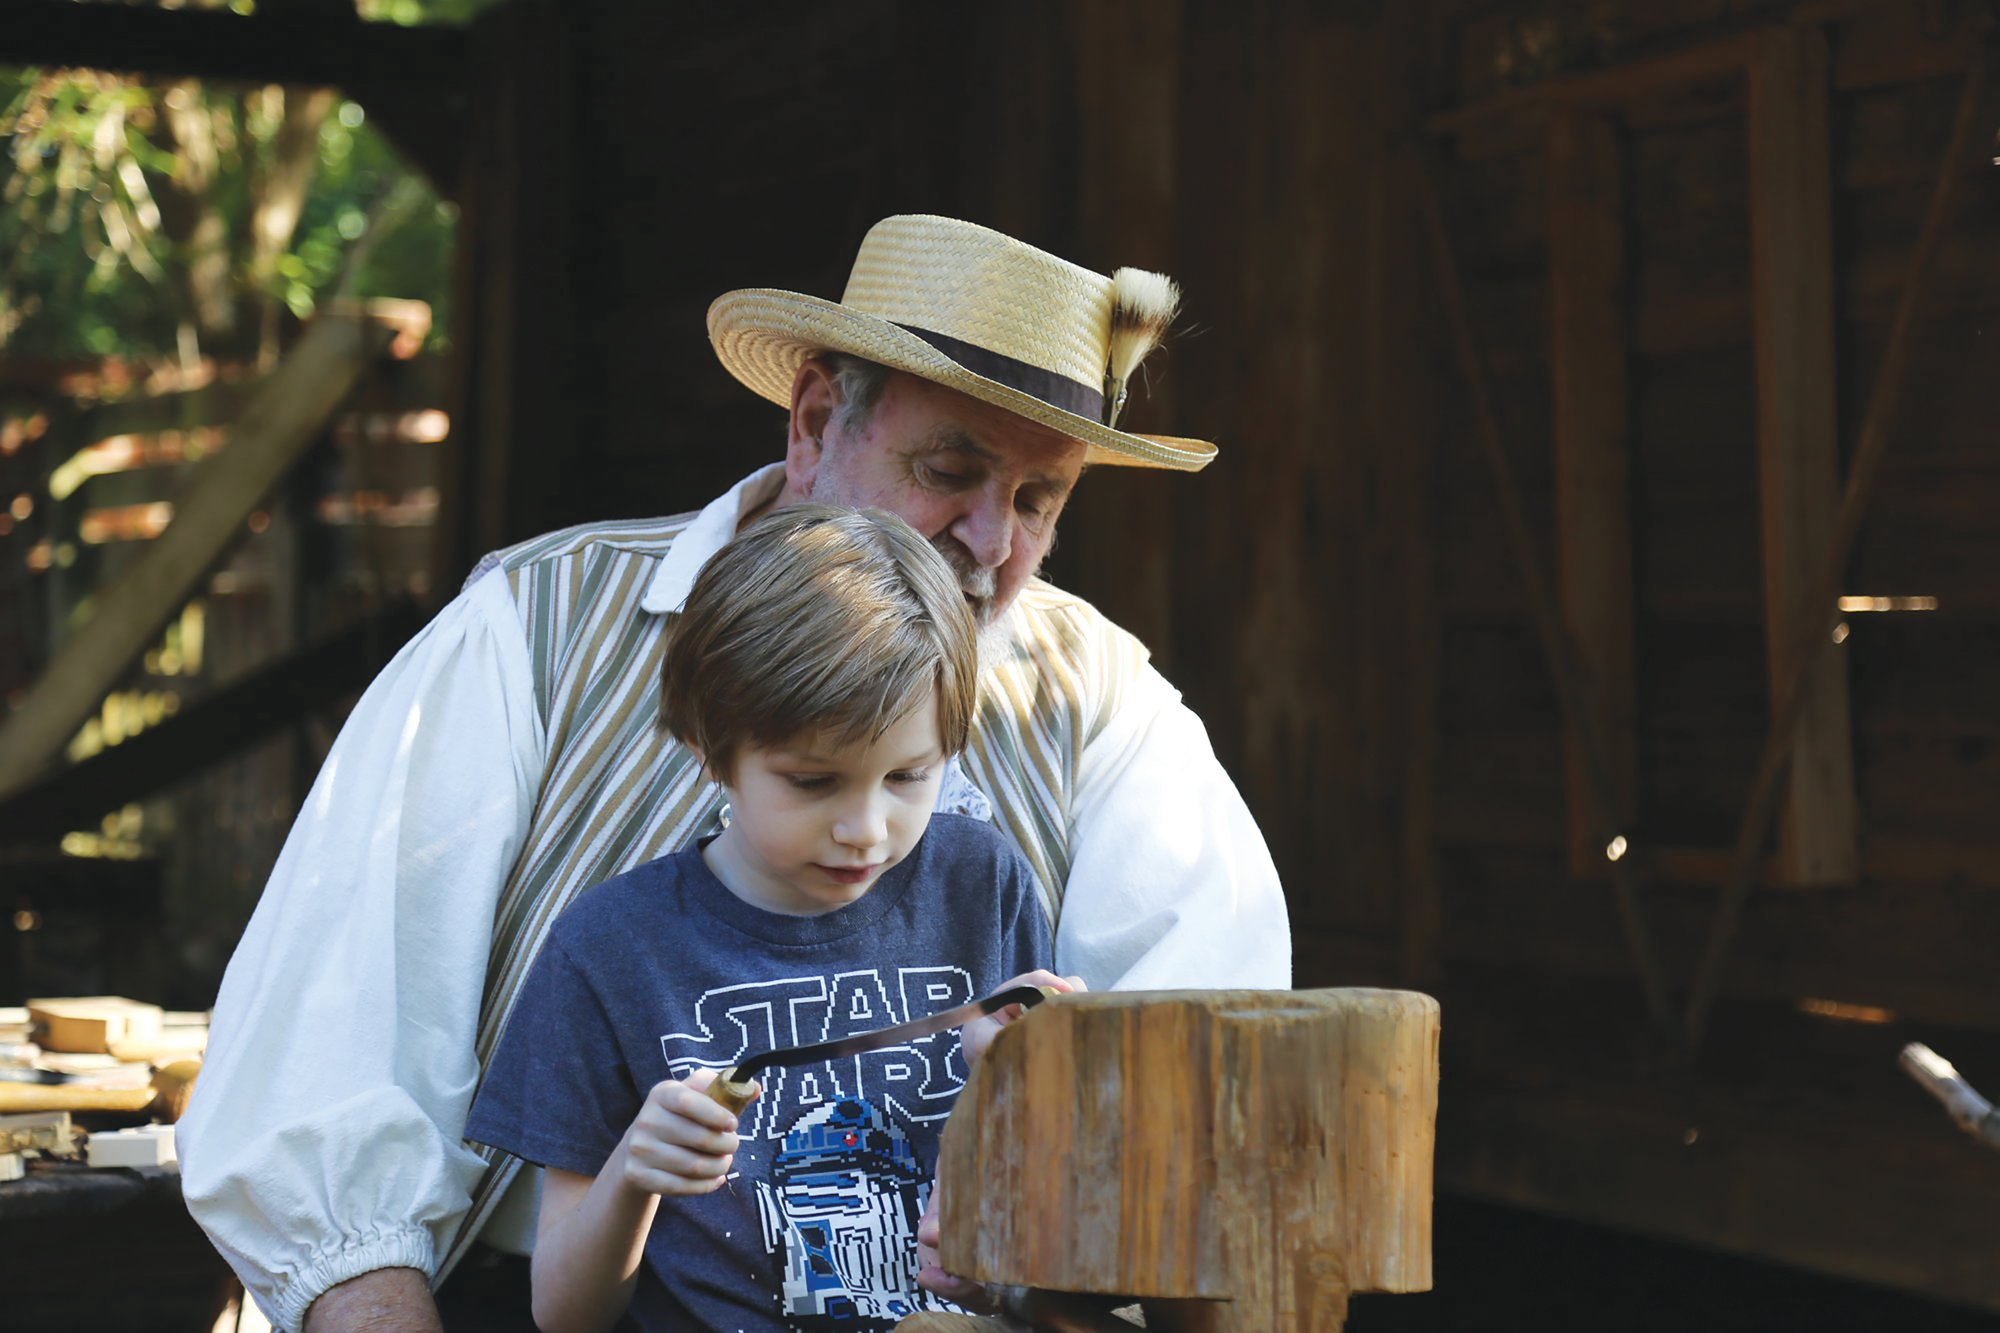 SUMTER ITEM FILE PHOTOSAdults and children attending the Sumter County Museum's Carolina Backcountry Harvest event on Saturday will experience what life was like 200 years ago.